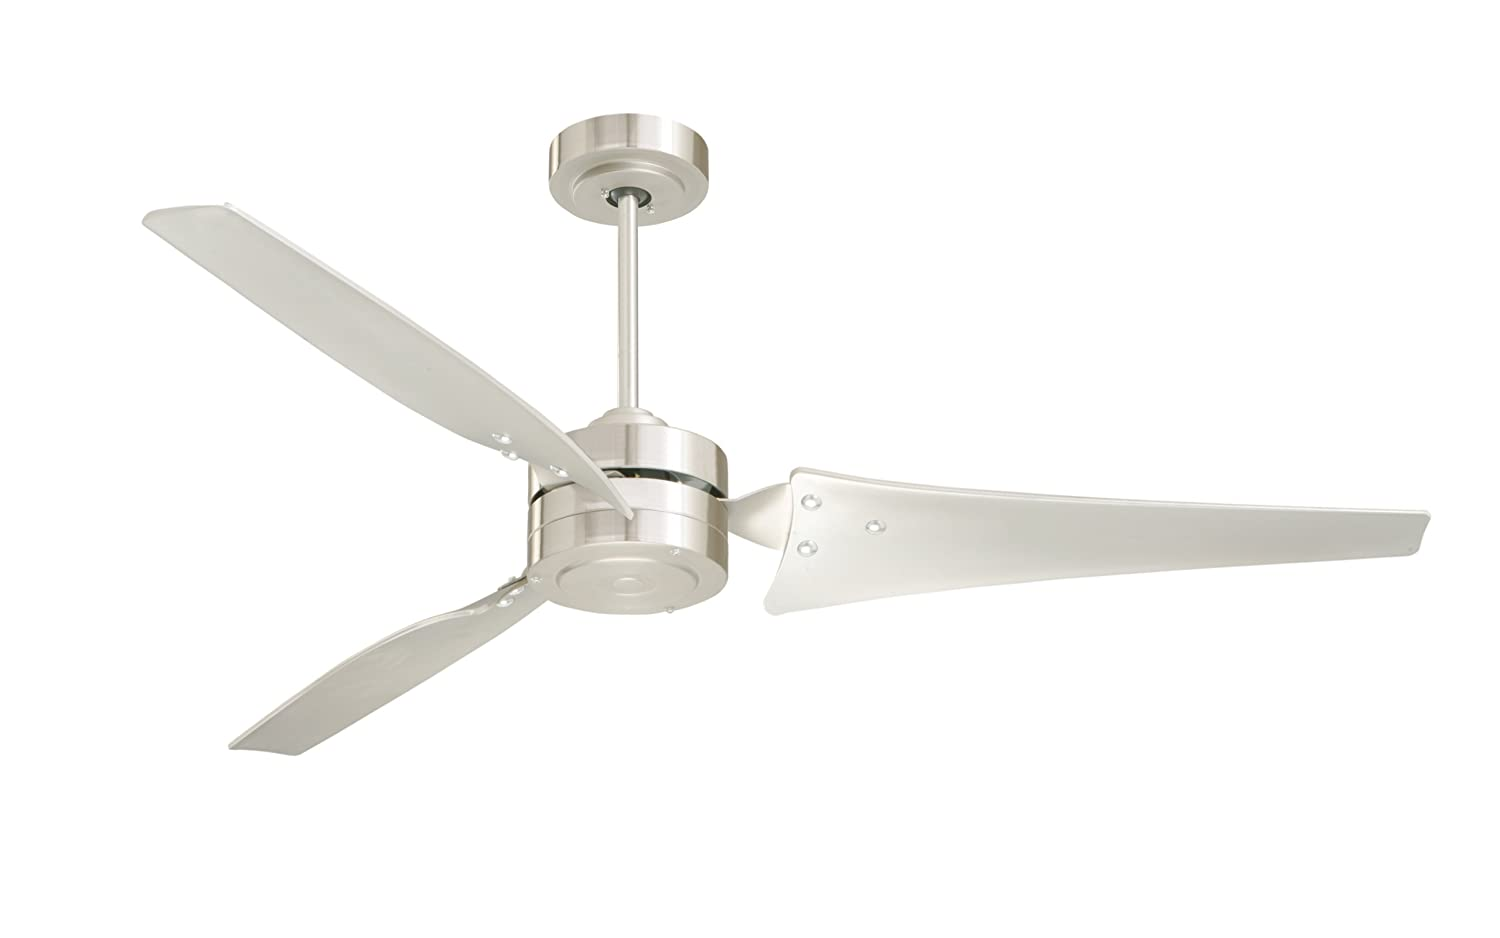 Emerson CF765BS Ceiling Fan with 4 Speed Wall Control and 60-Inch ...